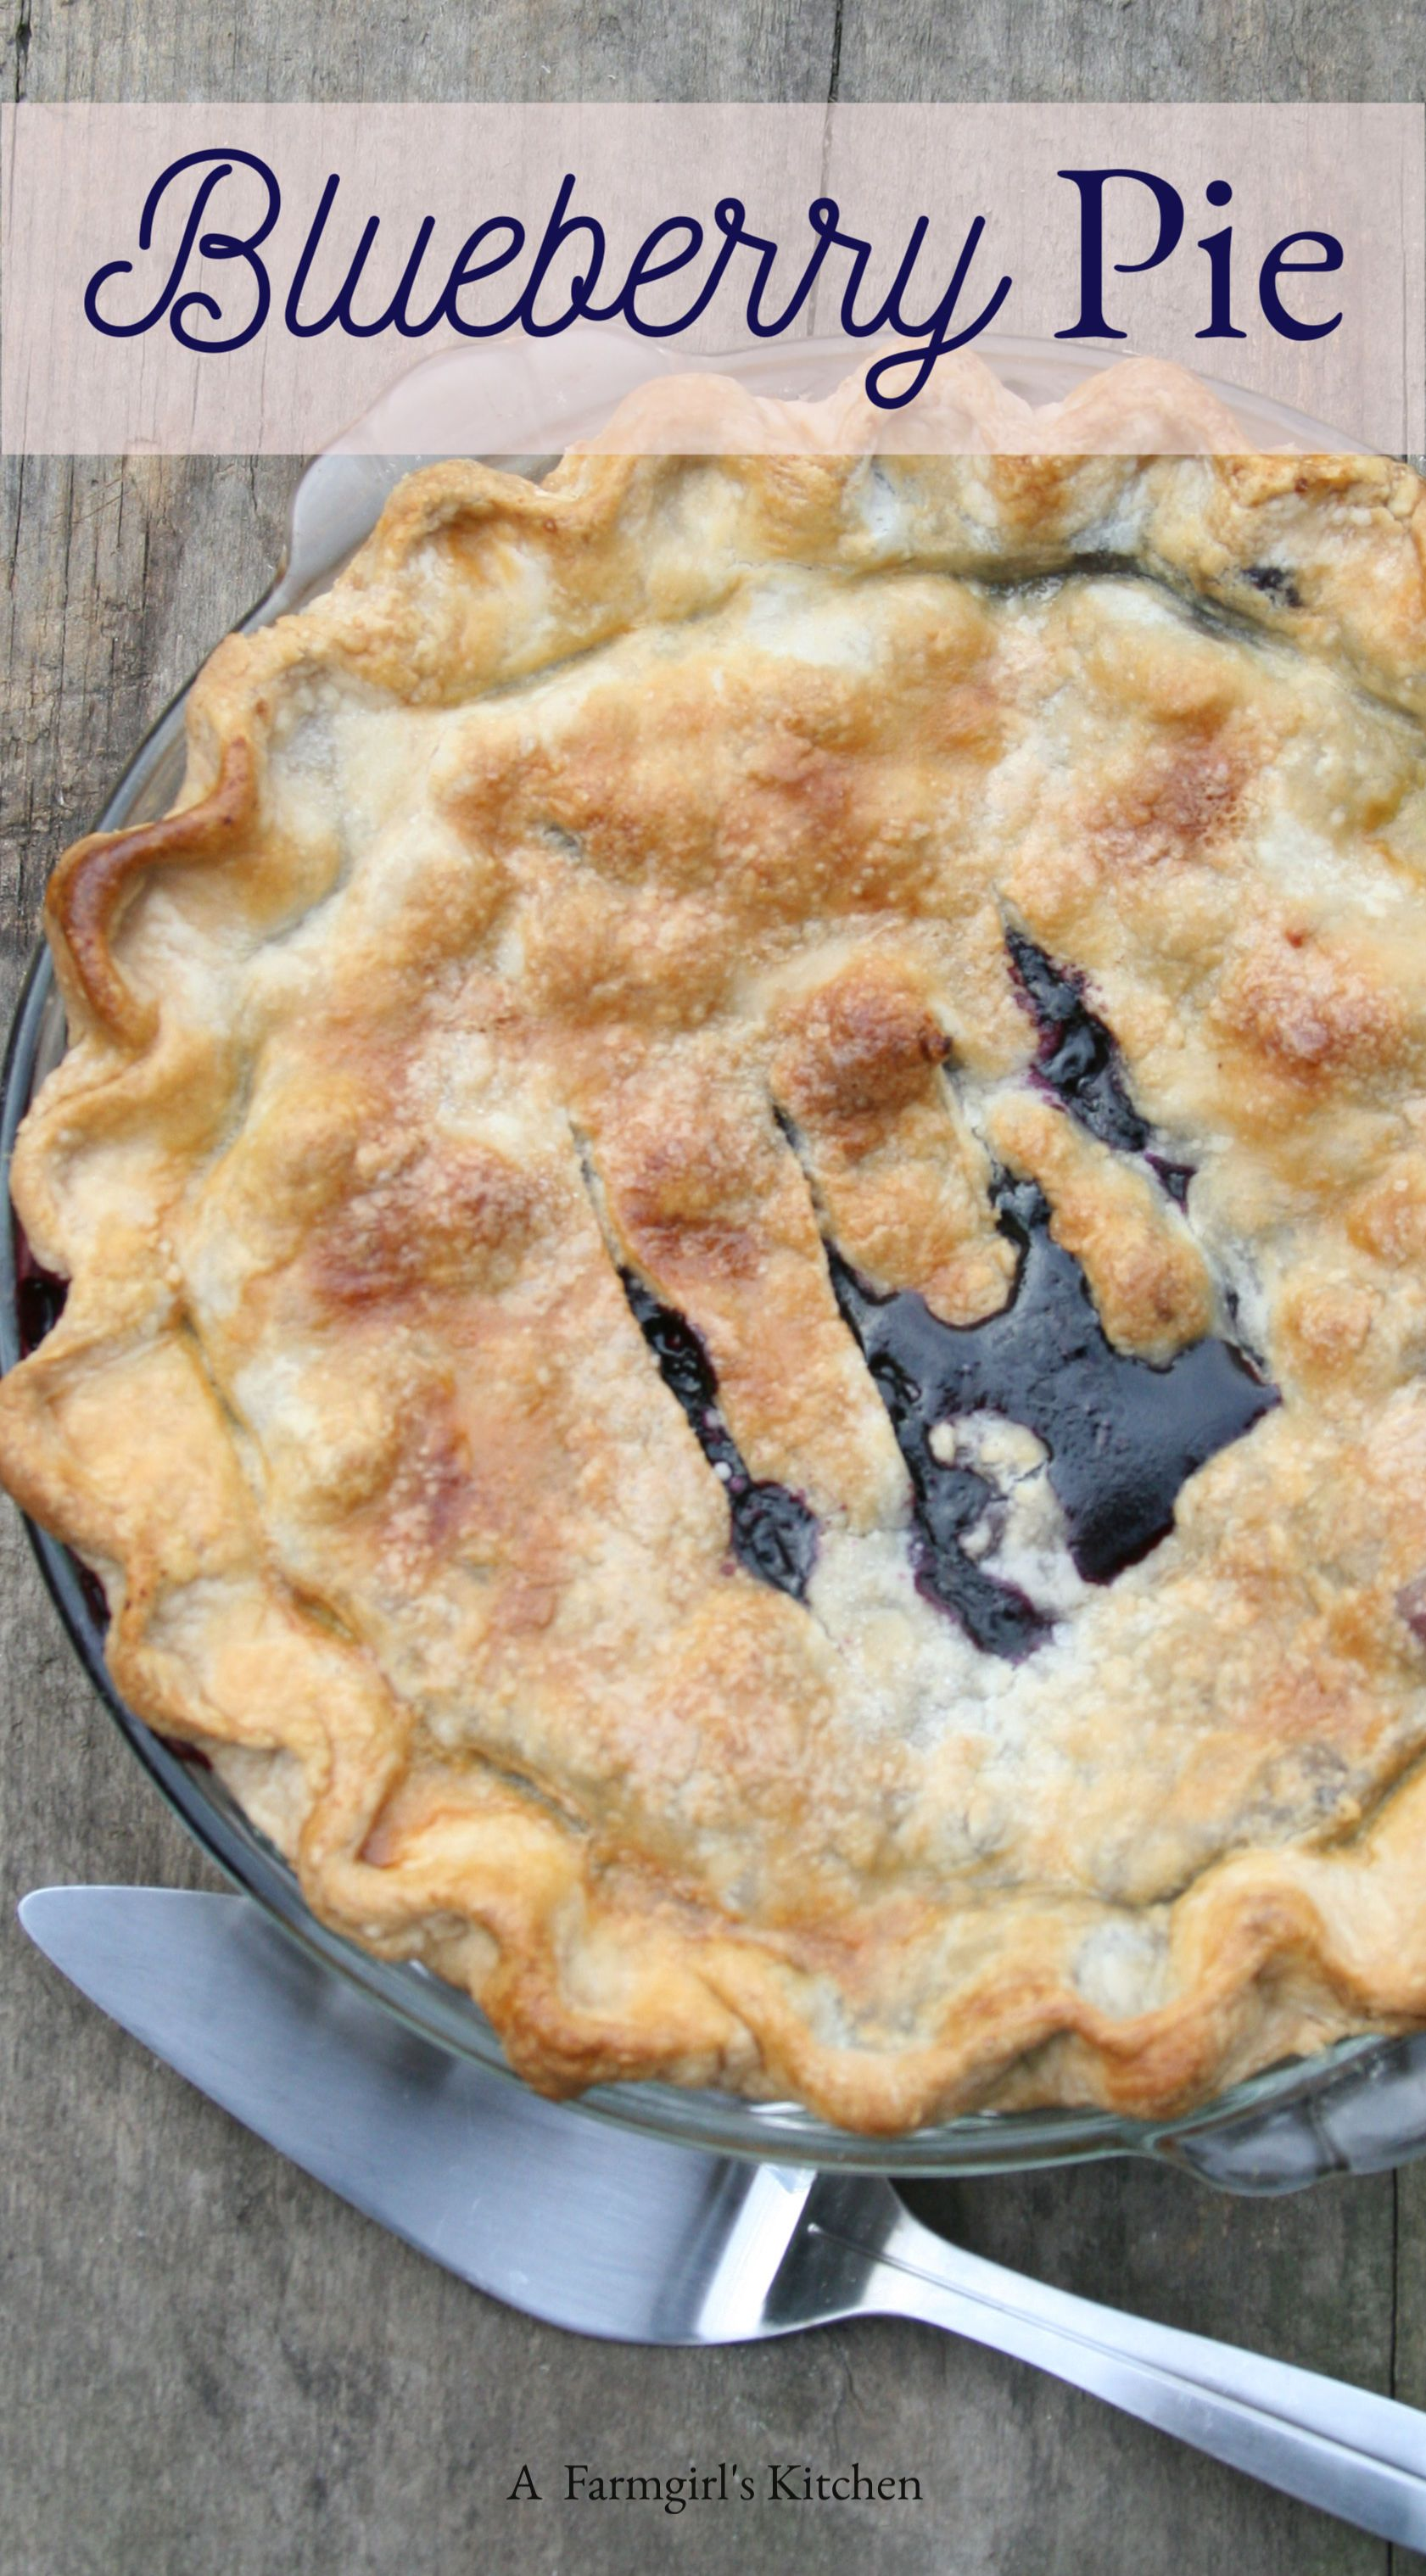 Get baking this summer with homemade blueberry pie